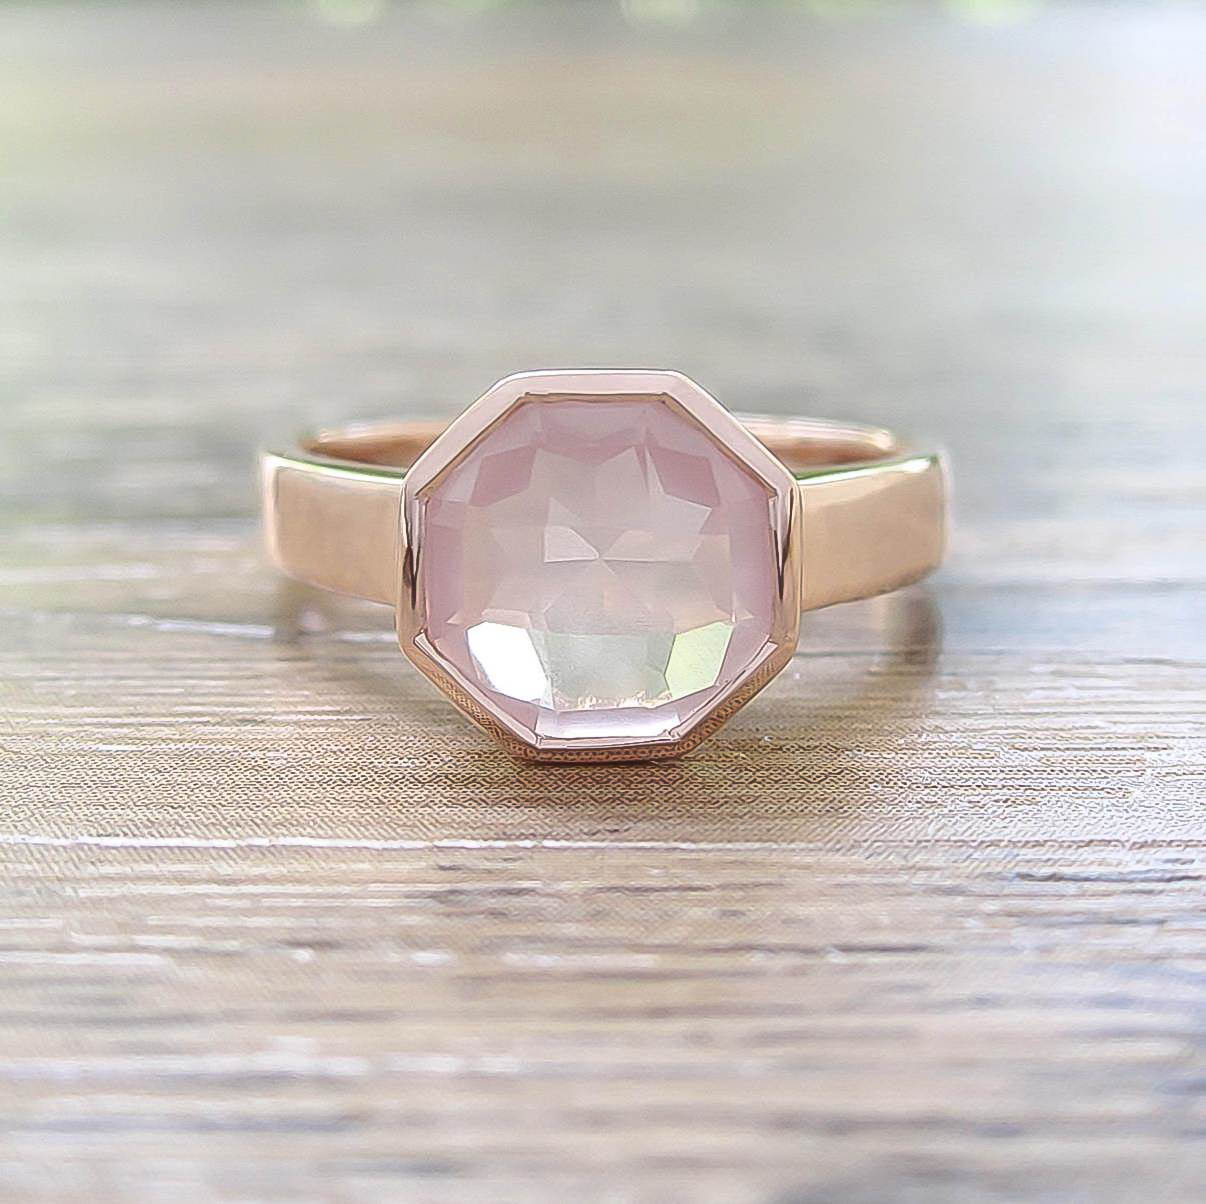 แหวน Rose Quartz Sterling Silver สี Rose Gold รุ่น Glamorous